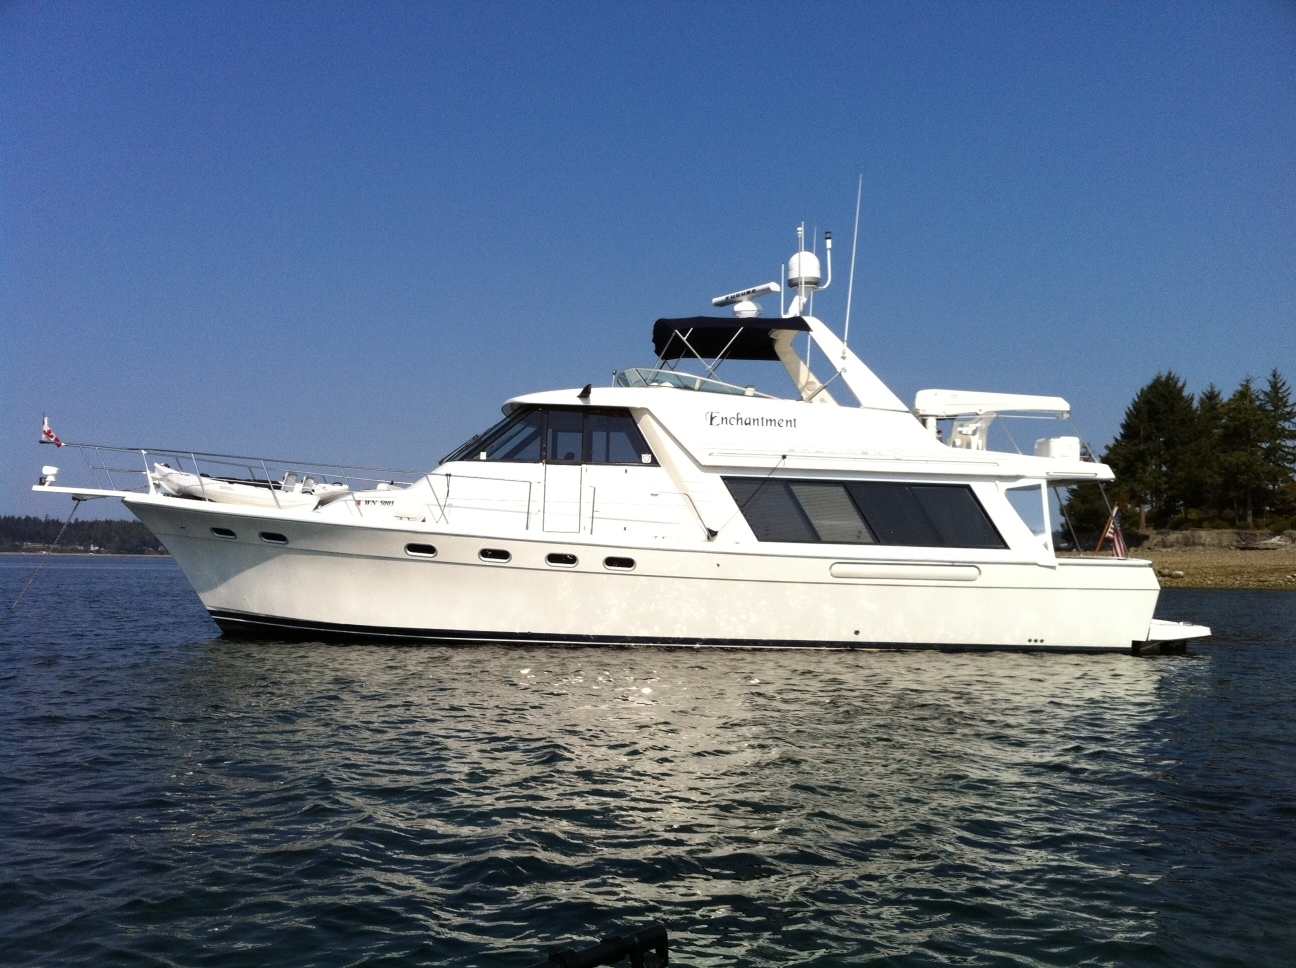 Bayliner 4788 Enchantment 3918425 For Charter